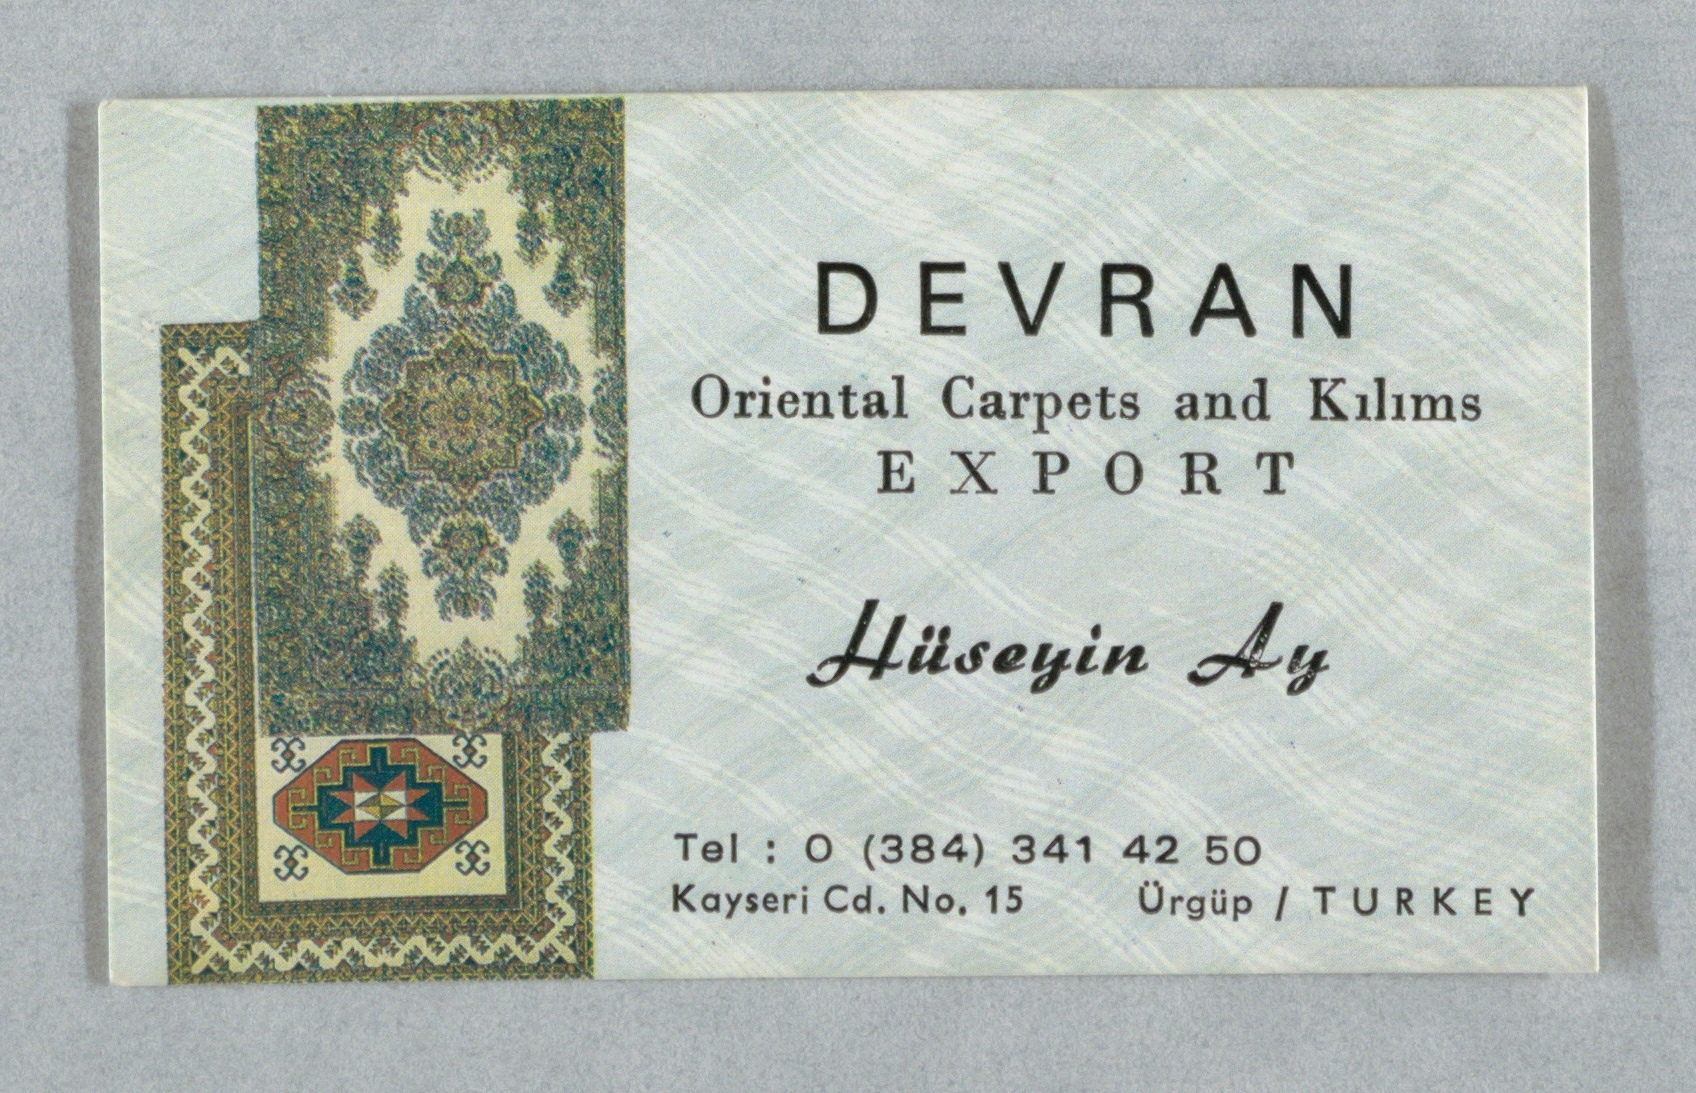 Devran Oriental Carpets and Kilims Export